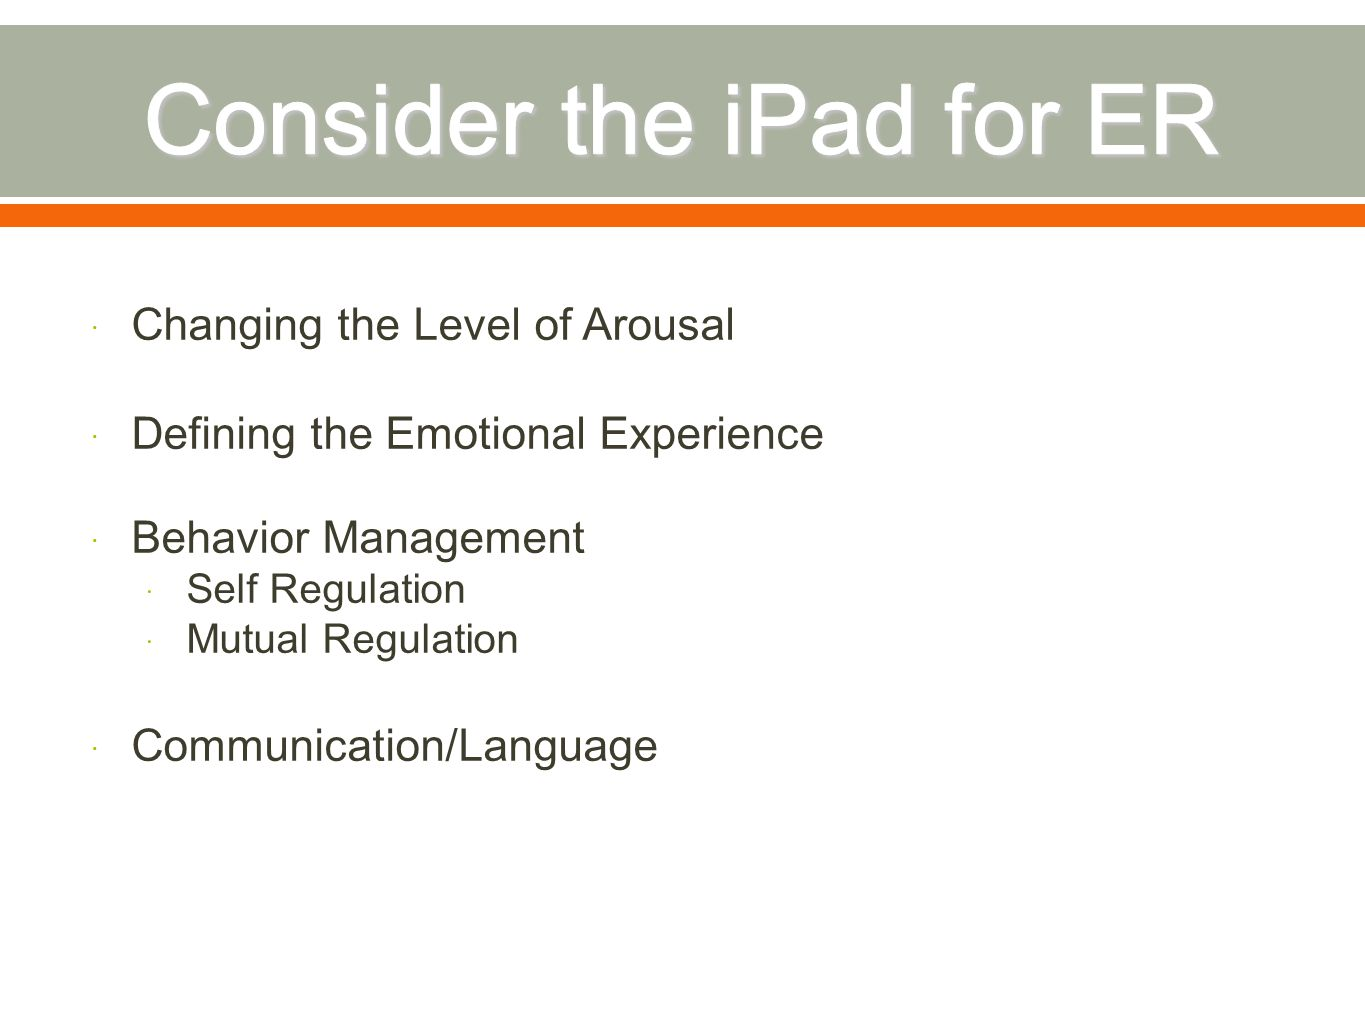  Changing the Level of Arousal  Defining the Emotional Experience  Behavior Management  Self Regulation  Mutual Regulation  Communication/Language